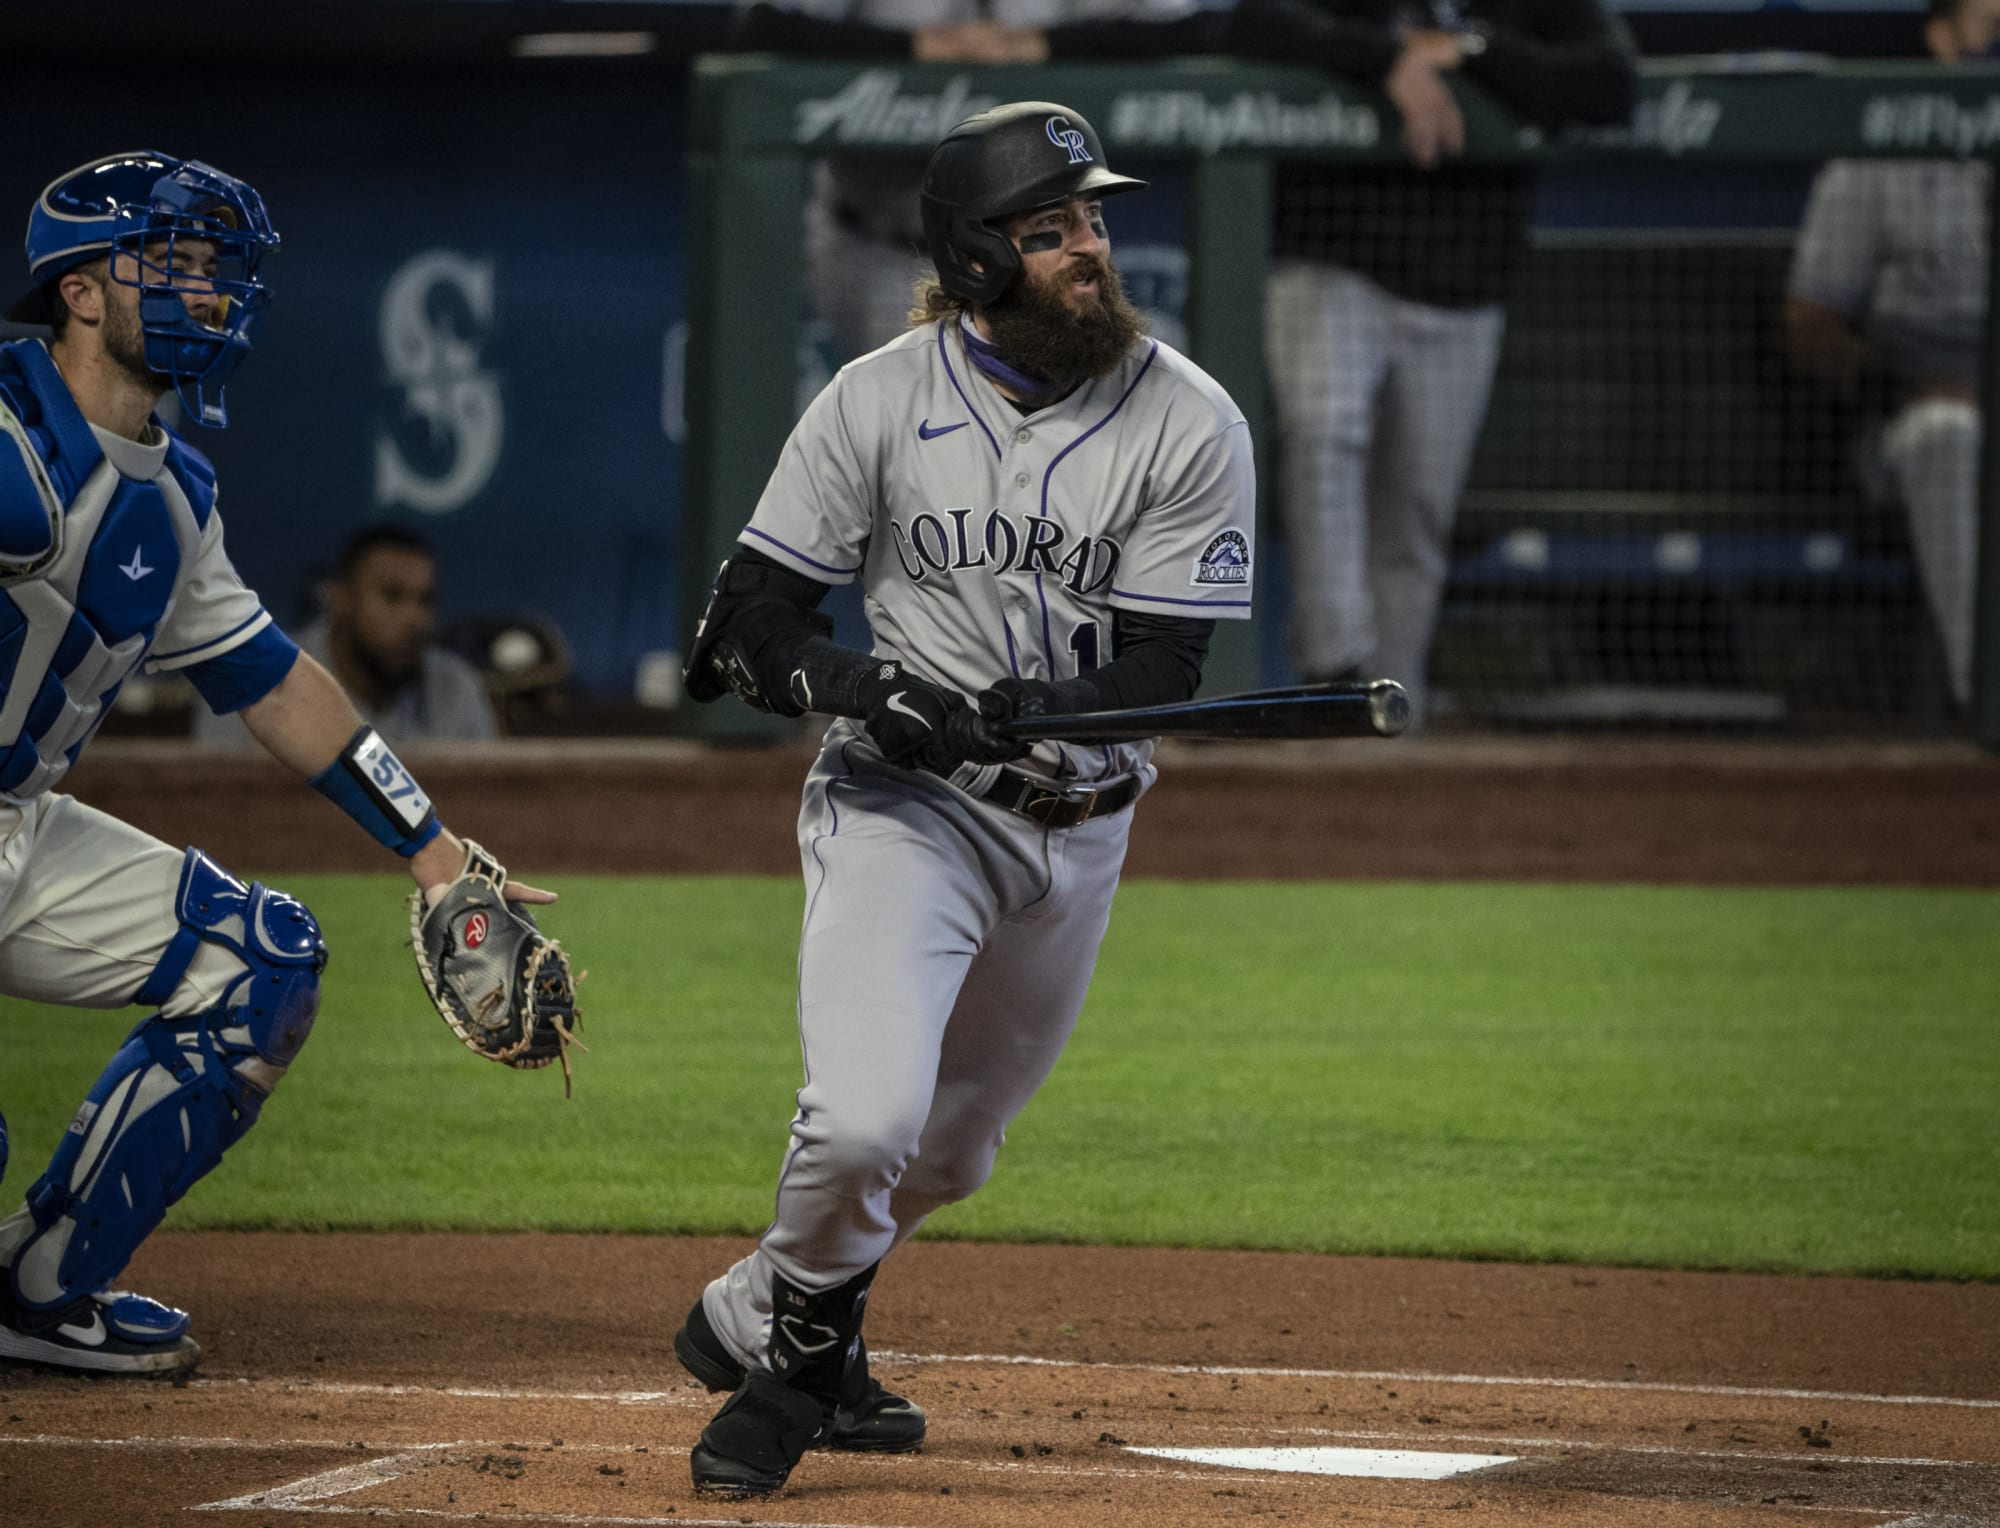 Charlie Blackmon thinks his own batting title should get an asterisk